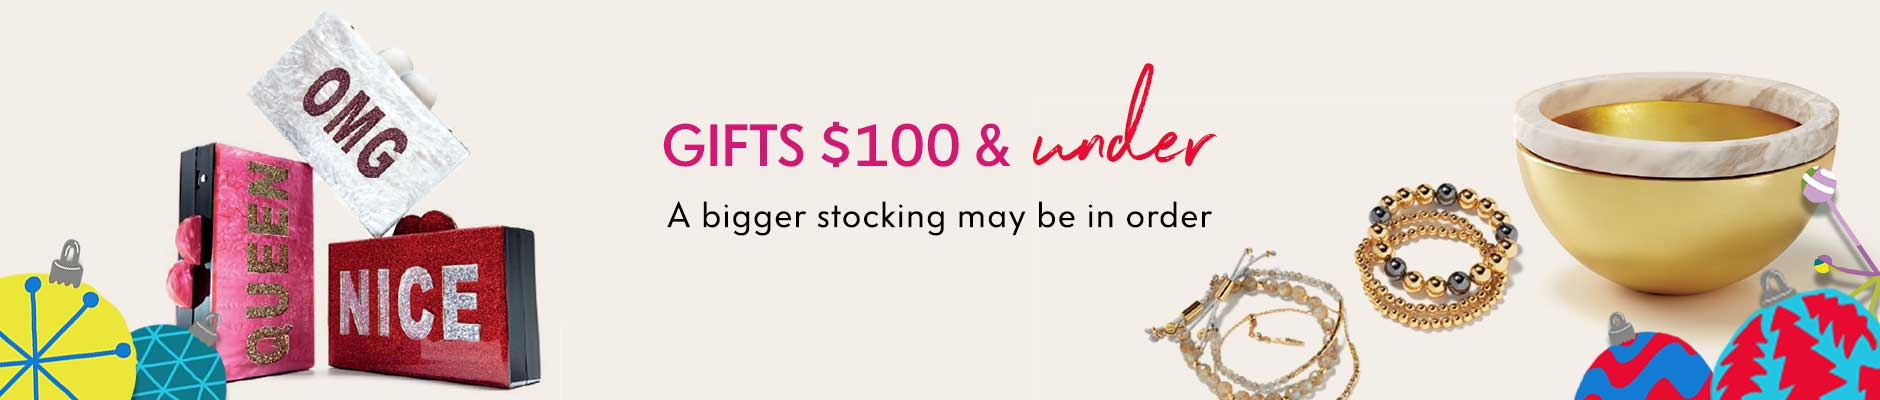 Gifts $100 & under - A bigger stocking may be in order